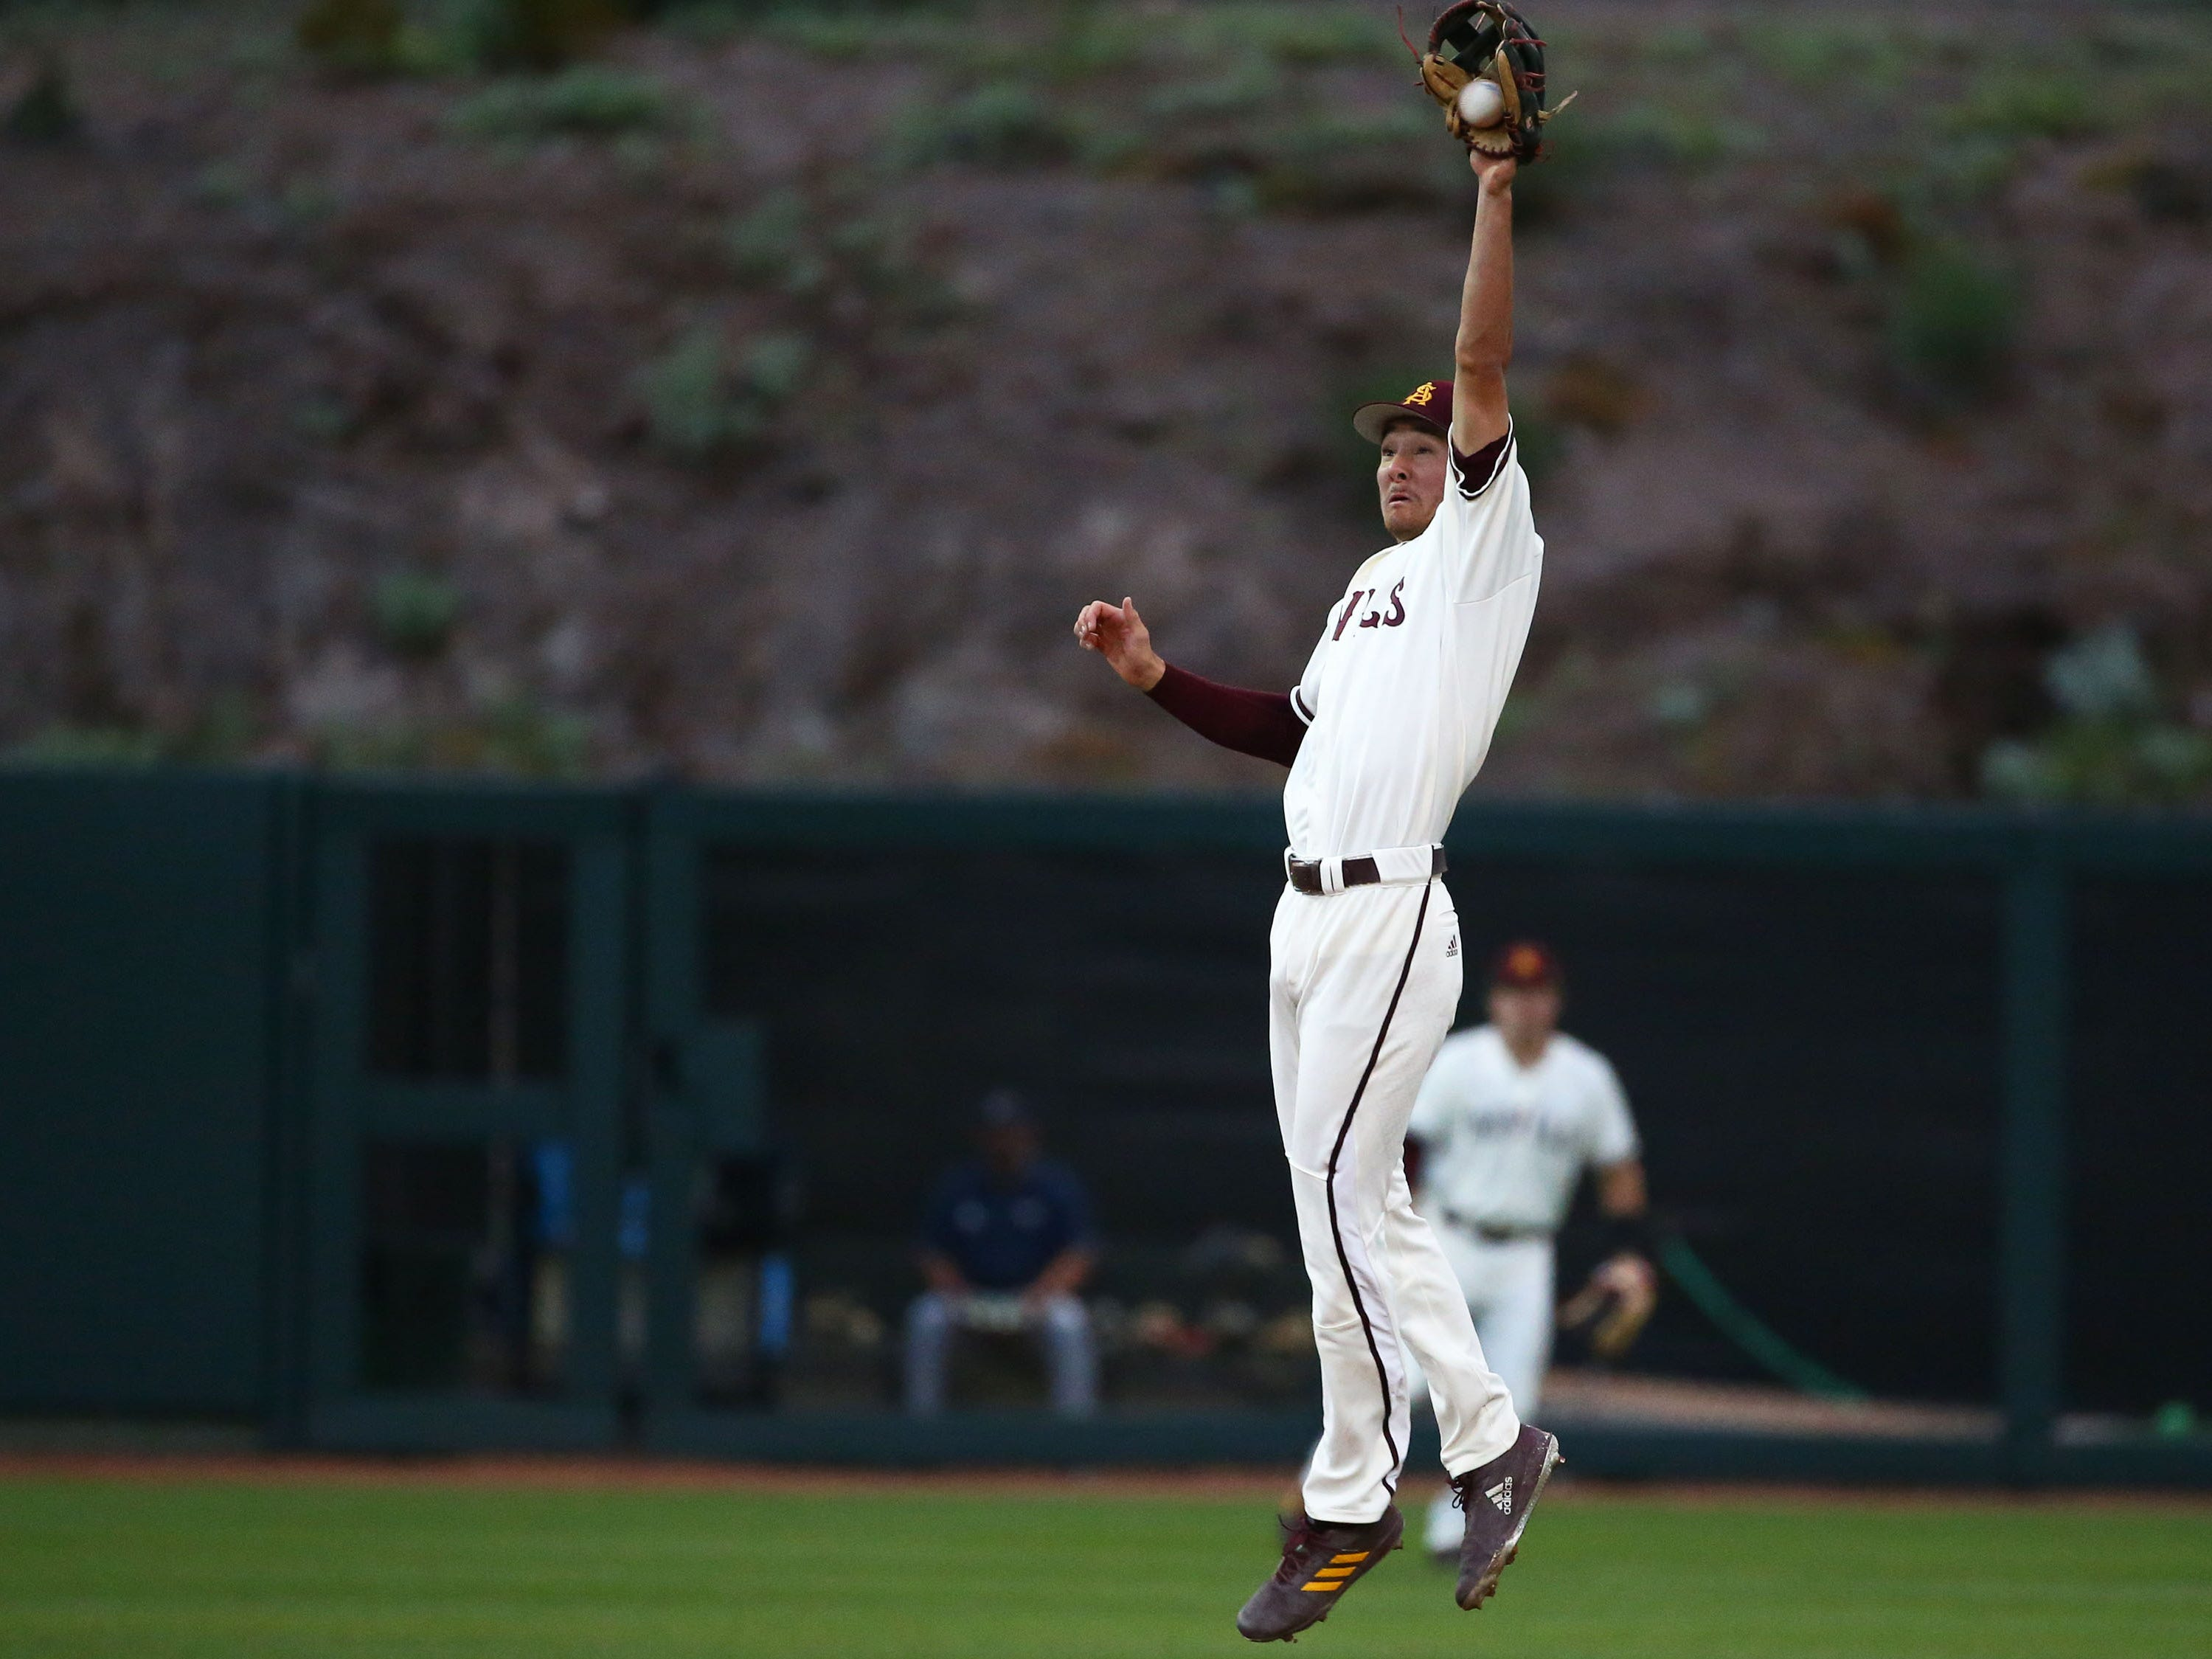 Arizona State Sun Devils shortstop Alika Williams makes a leaping catch on a line drive hit by California Baptist Lancers Chad Castillo in the first inning at Phoenix Municipal Stadium on Mar. 20, 2019 in Phoenix, Ariz.